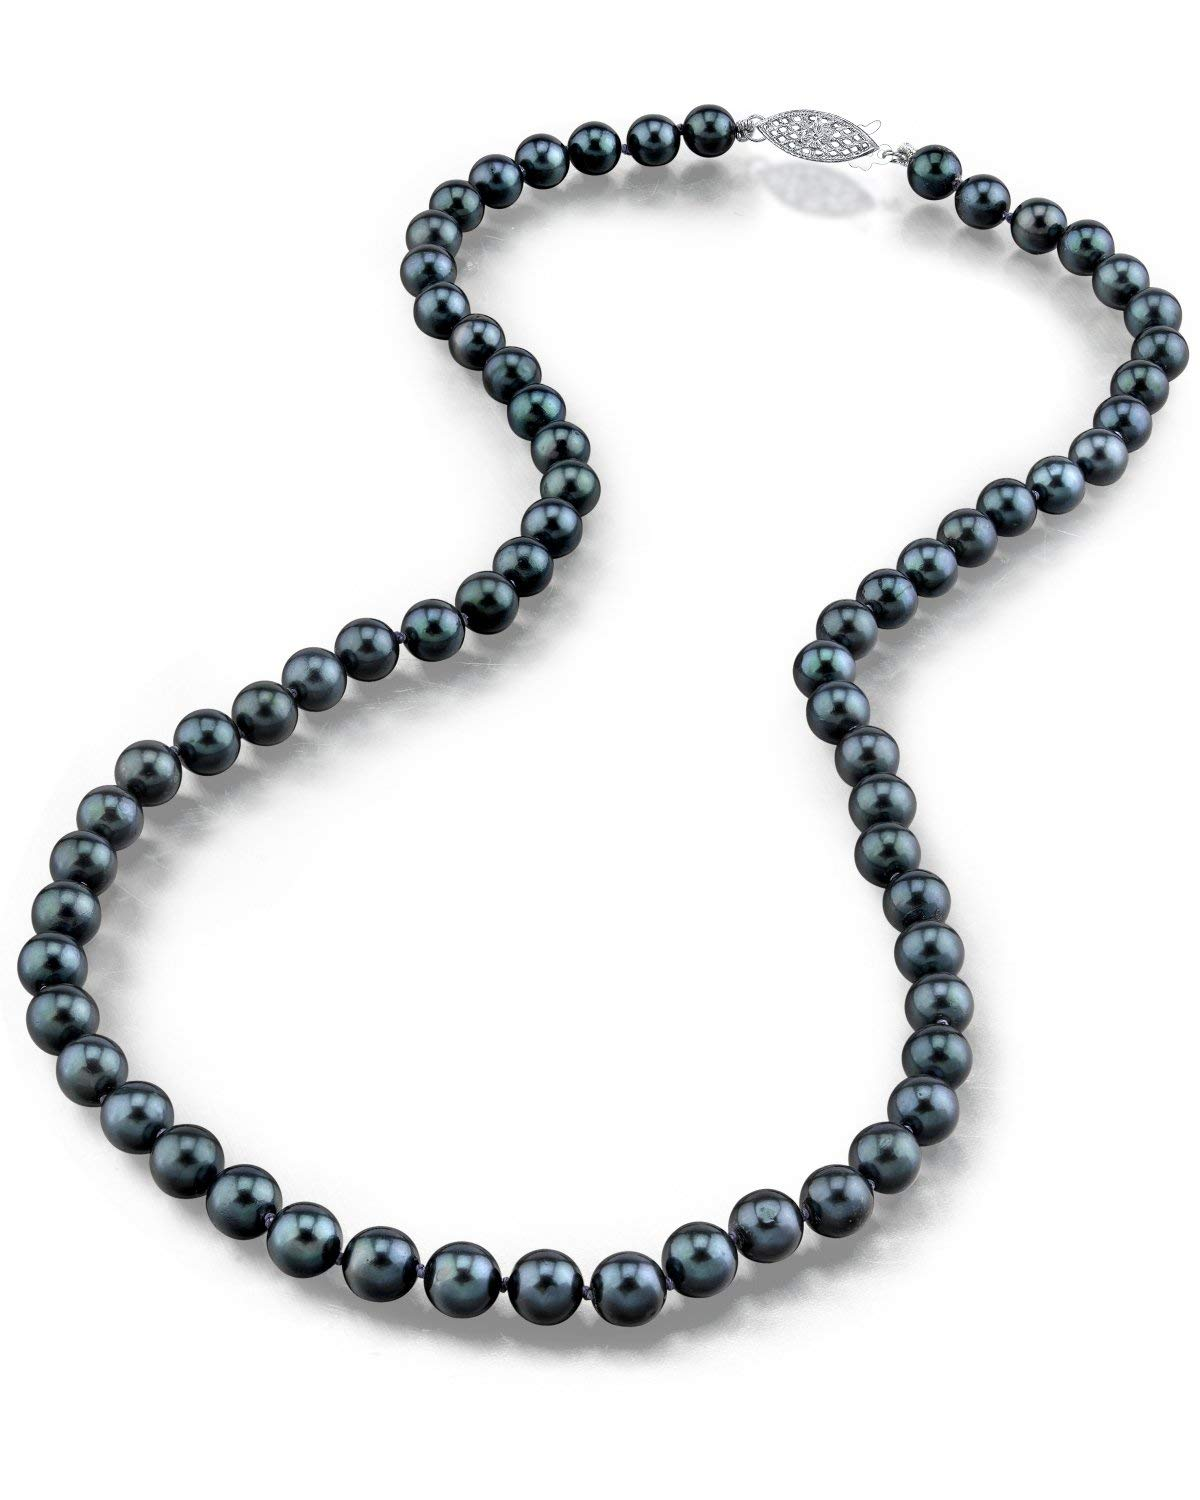 THE PEARL SOURCE 14K Gold 6.5-7.0mm AAA Quality Round Genuine Black Japanese Akoya Saltwater Cultured Pearl Necklace in 20'' Matinee Length for Women